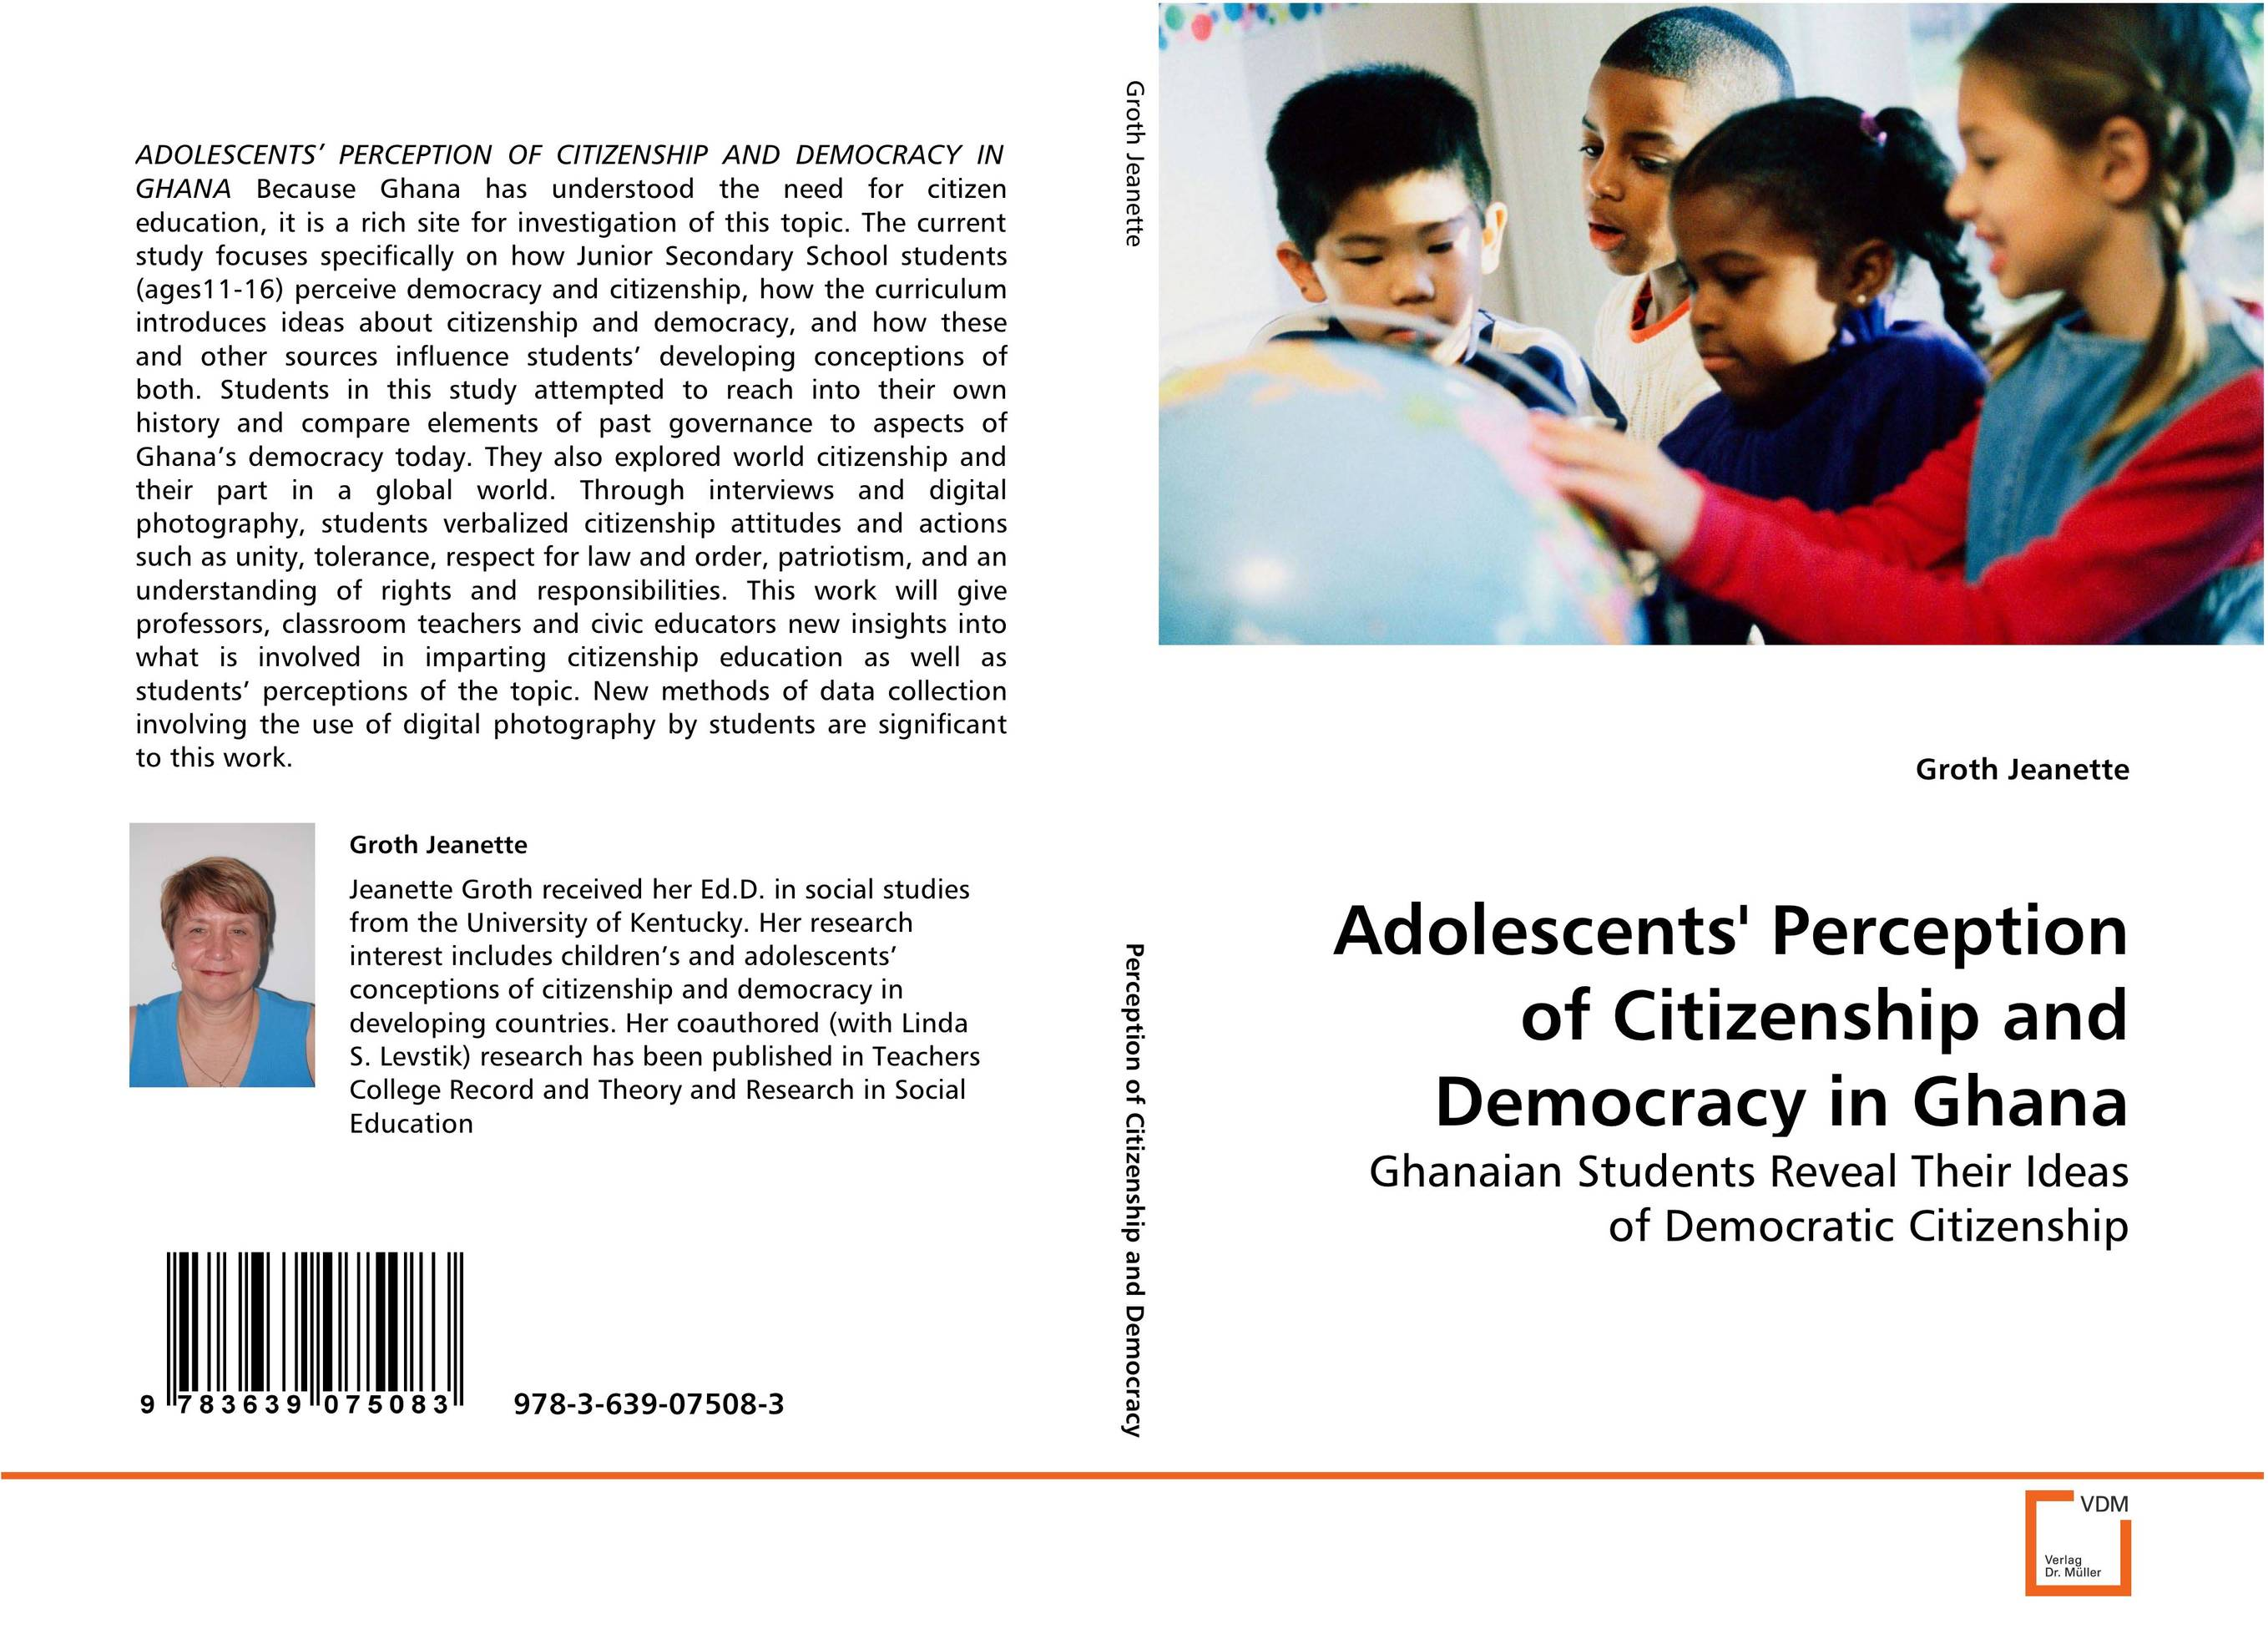 Adolescents'' Perception of Citizenship and Democracyin Ghana ripudaman singh arihant kaur bhalla and er gurkamal singh adolescents of intact families and orphanages